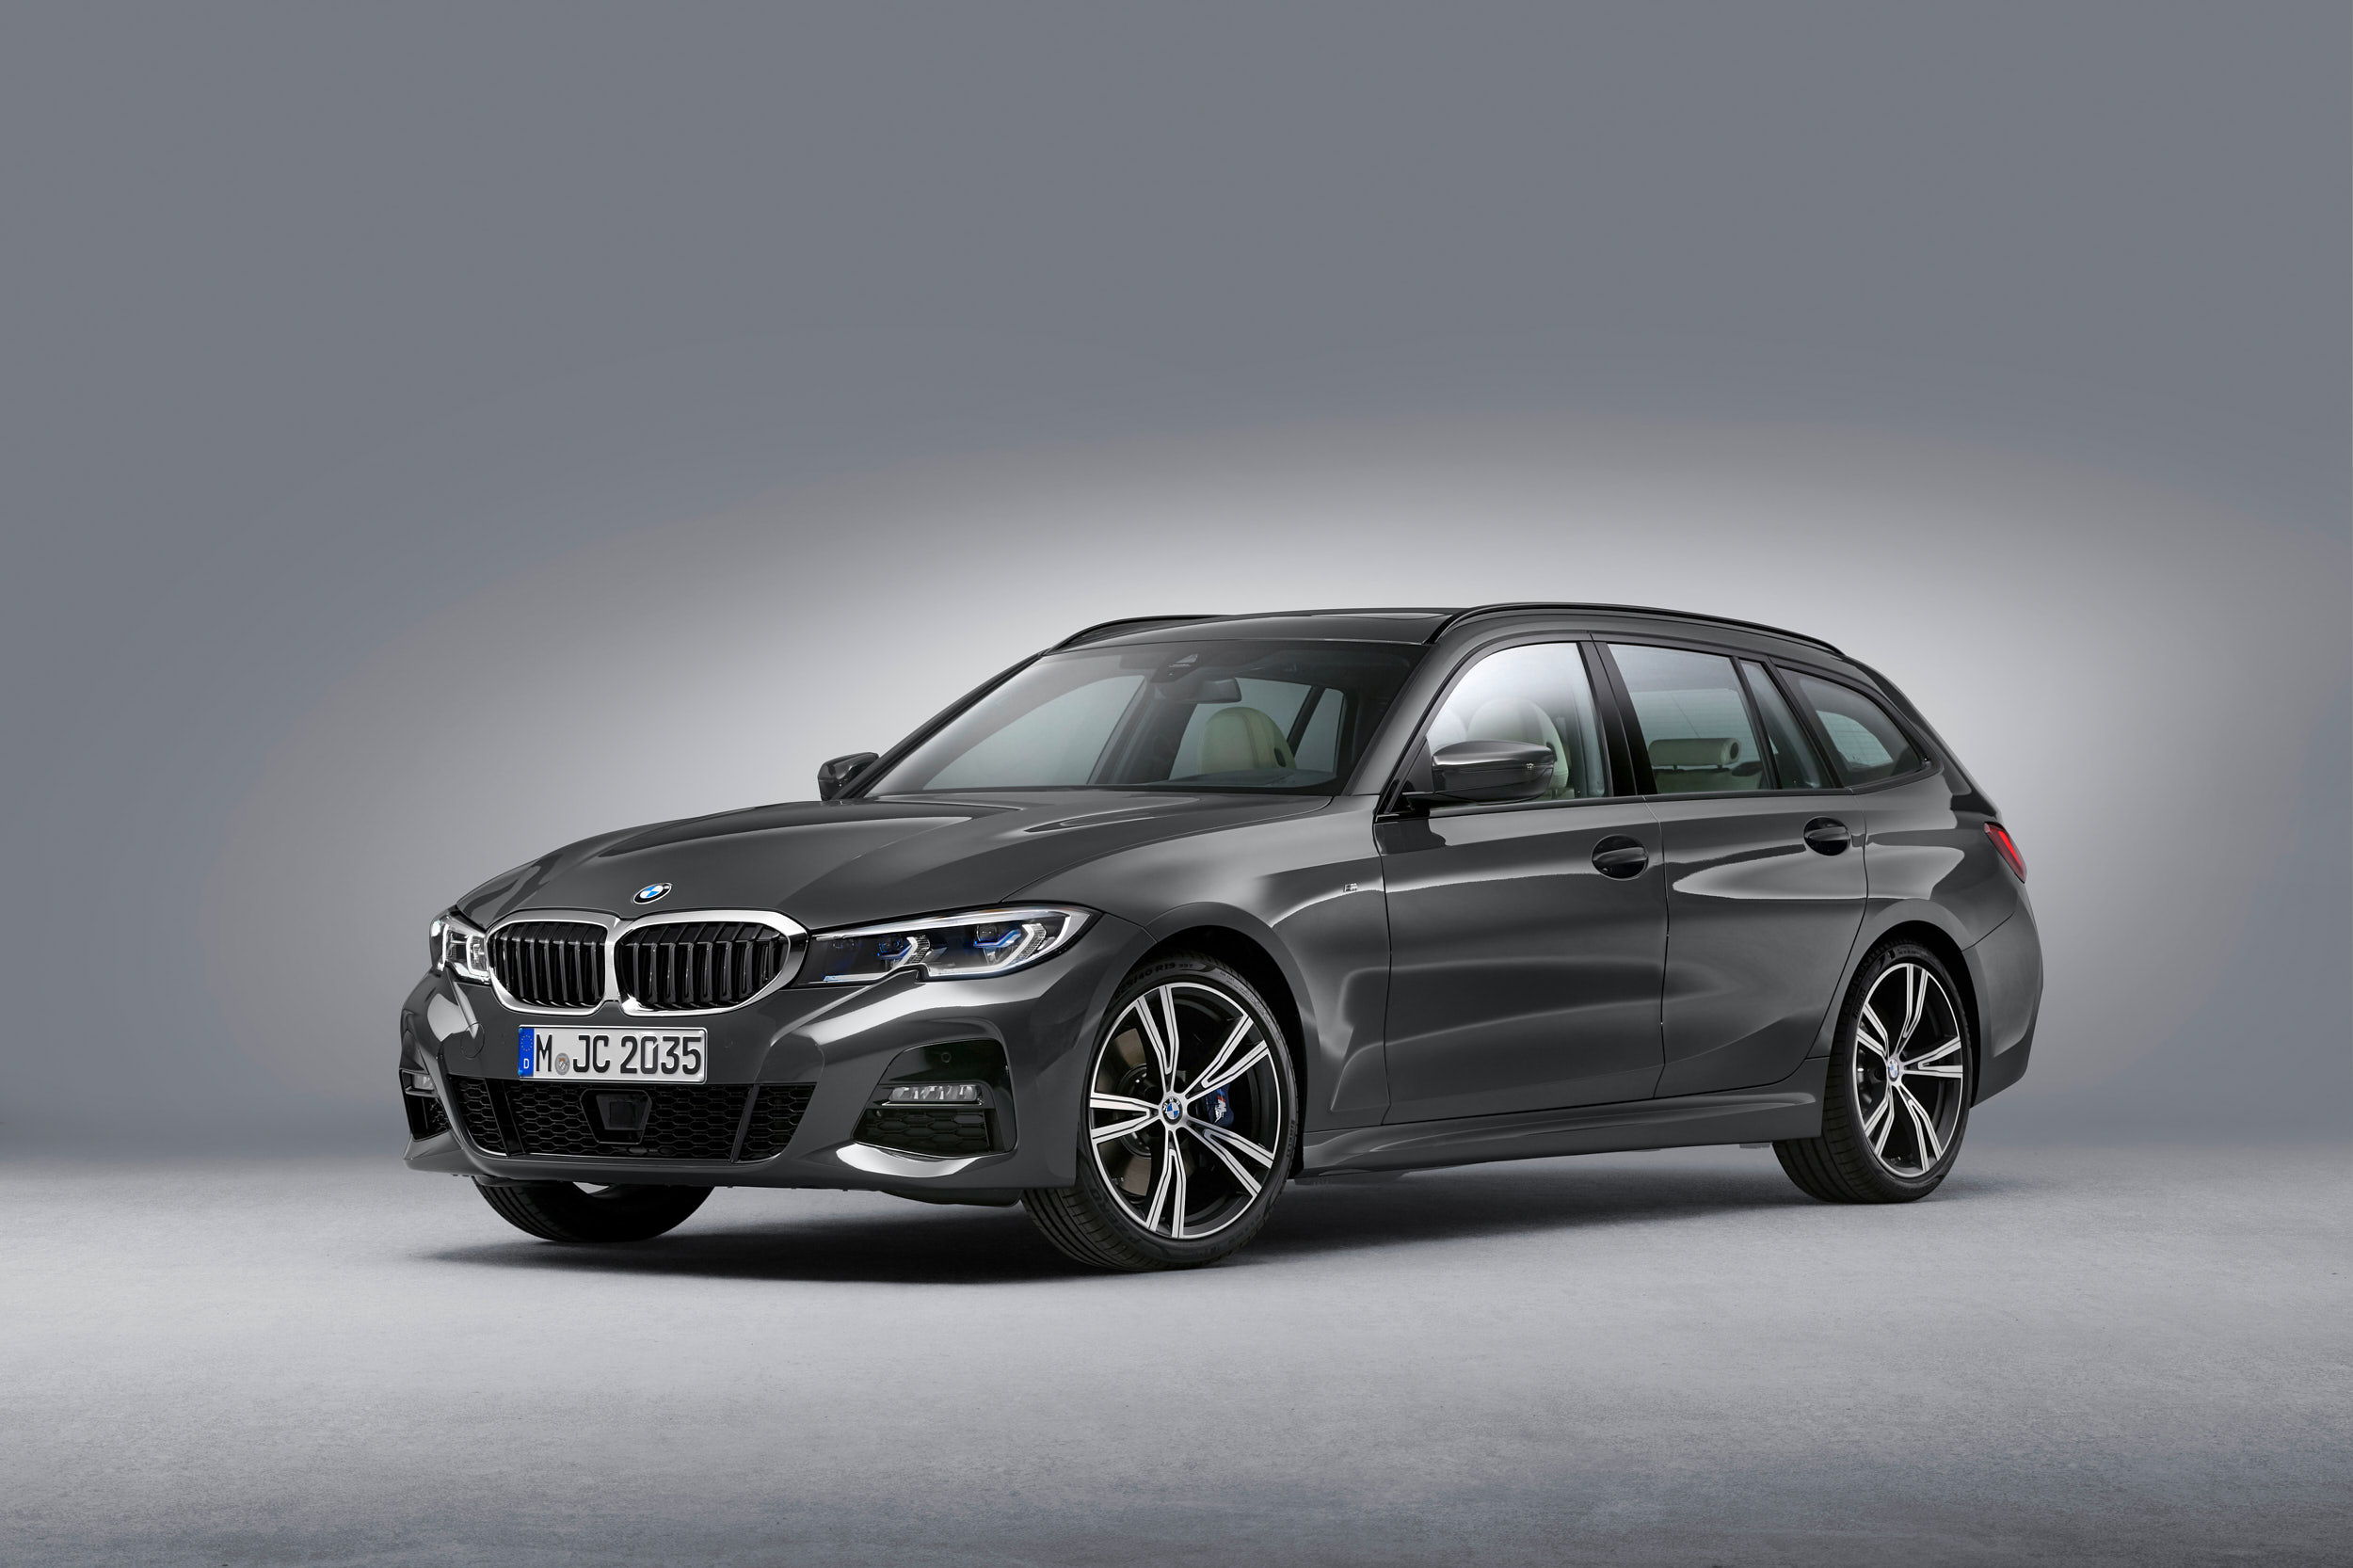 01_0519_BMW_3Touring_EXT_34Front_01_web